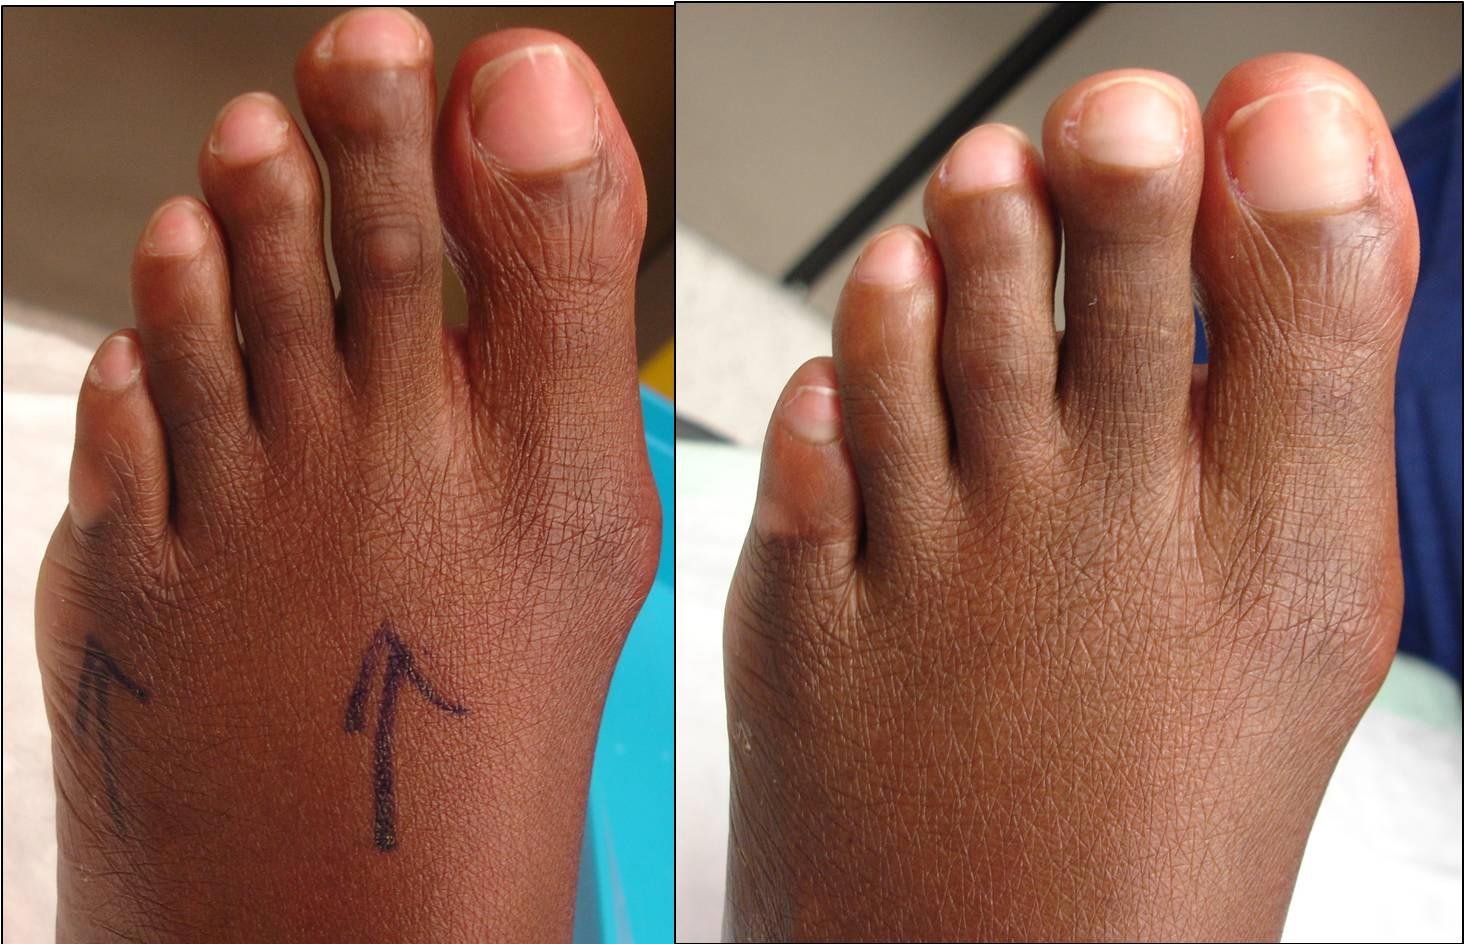 5-months after the left 2nd toe was shortened with the Smart toe clip, this patient returned for her right 2nd toe procedure.